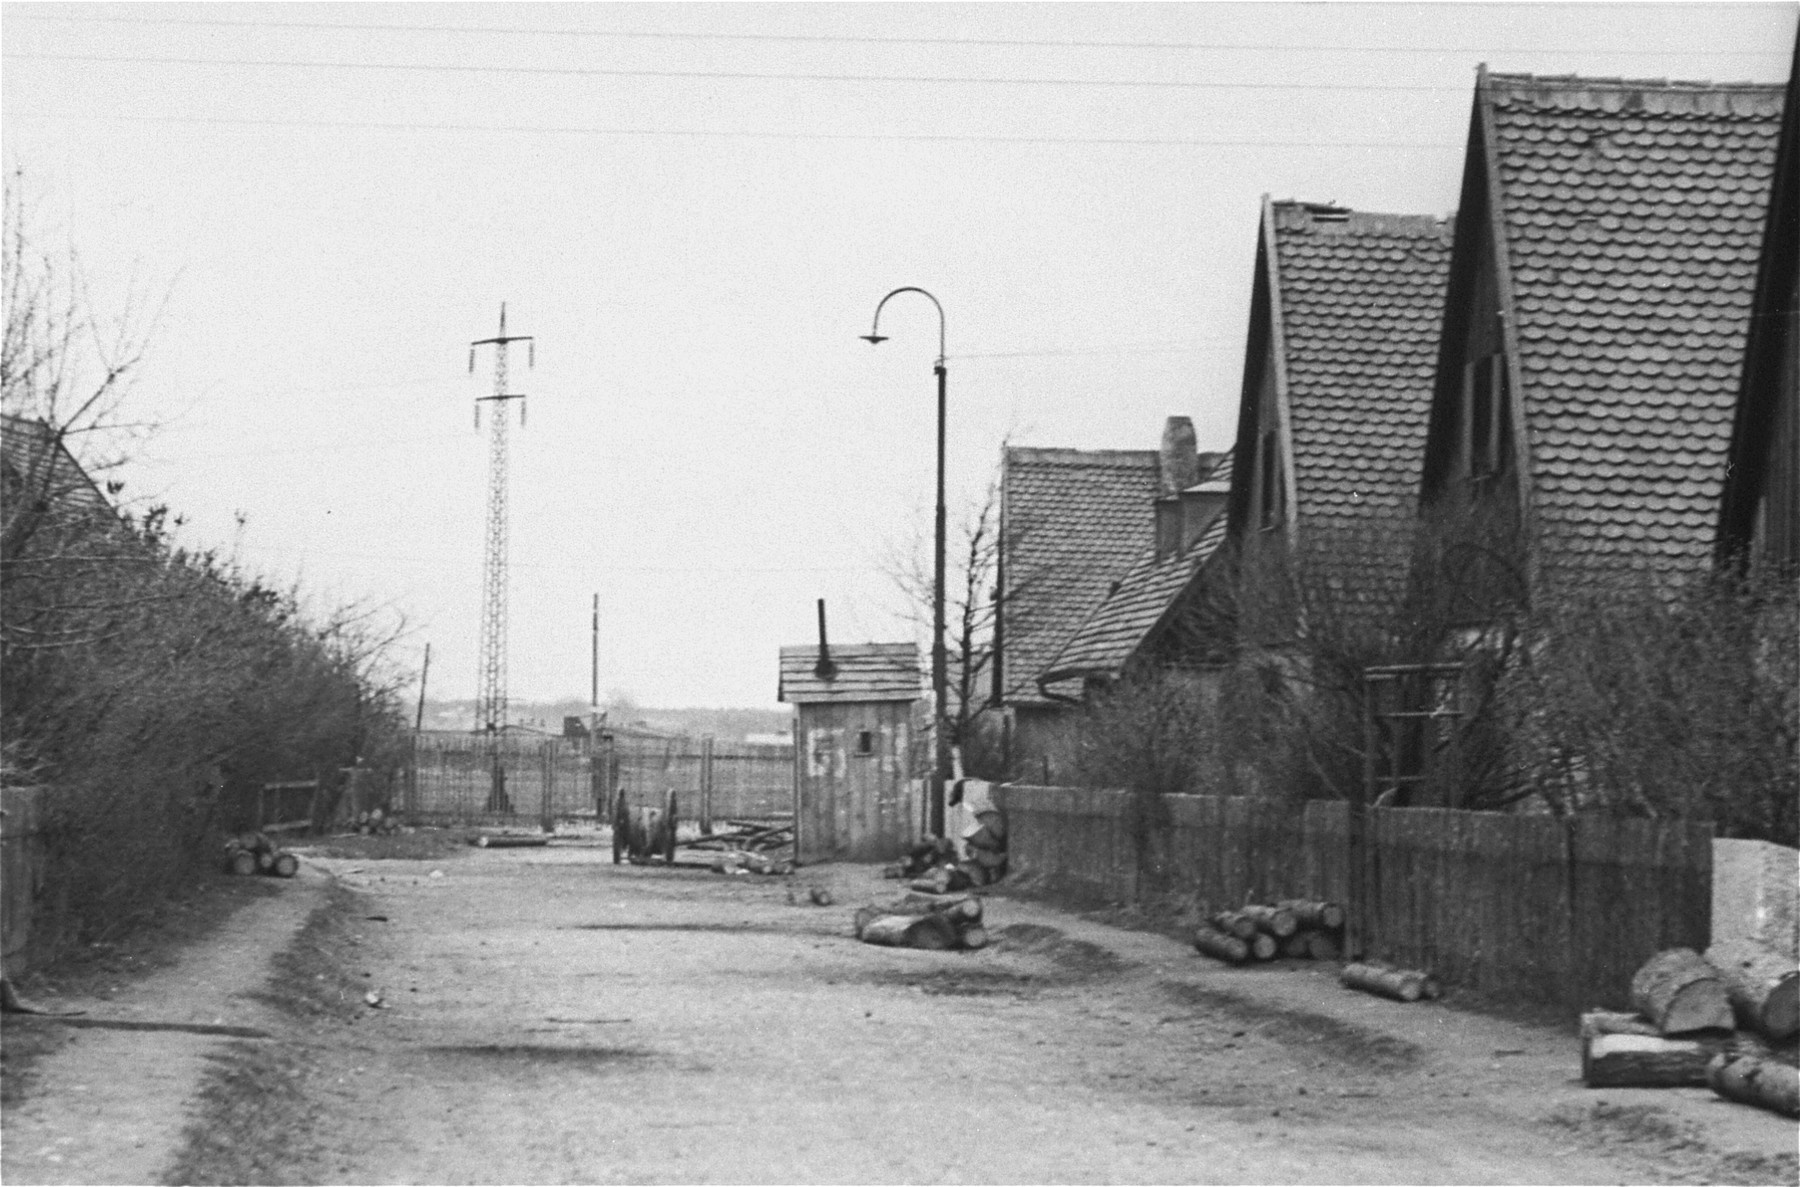 View at Neu Freimann displaced persons camp.